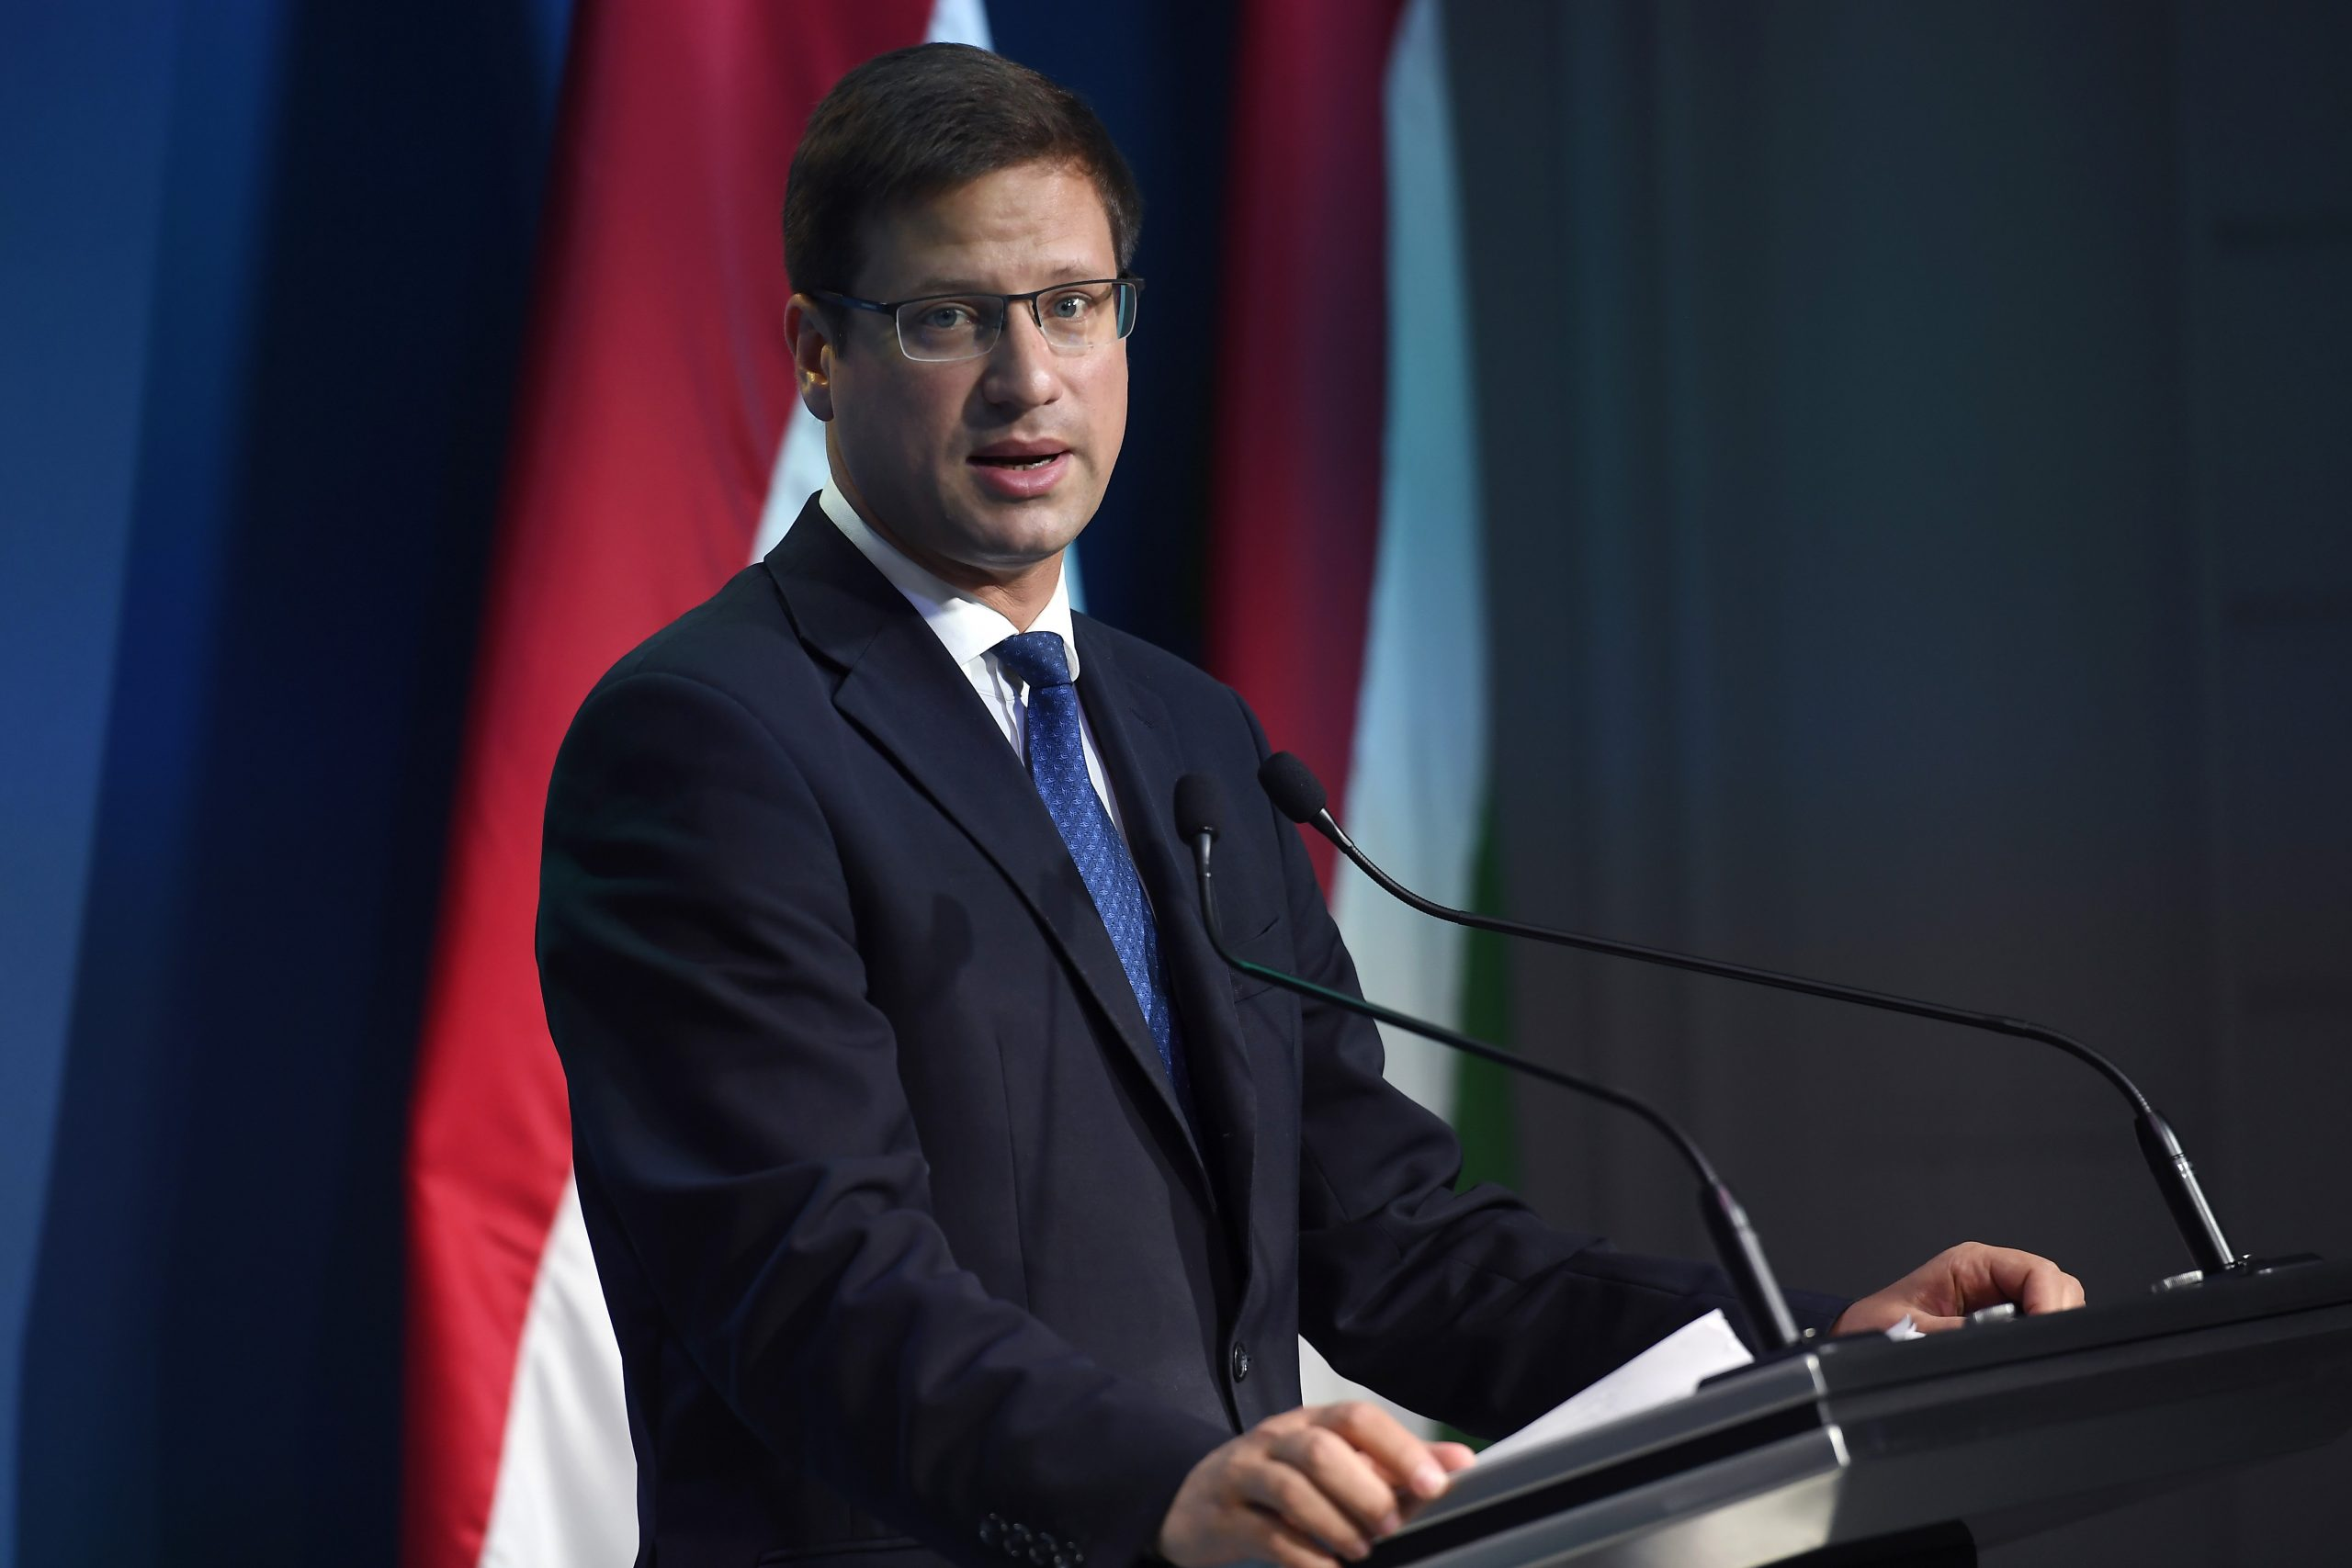 PMO Head Gulyás to Die Presse: Hungarian Press More Diverse than Germany's